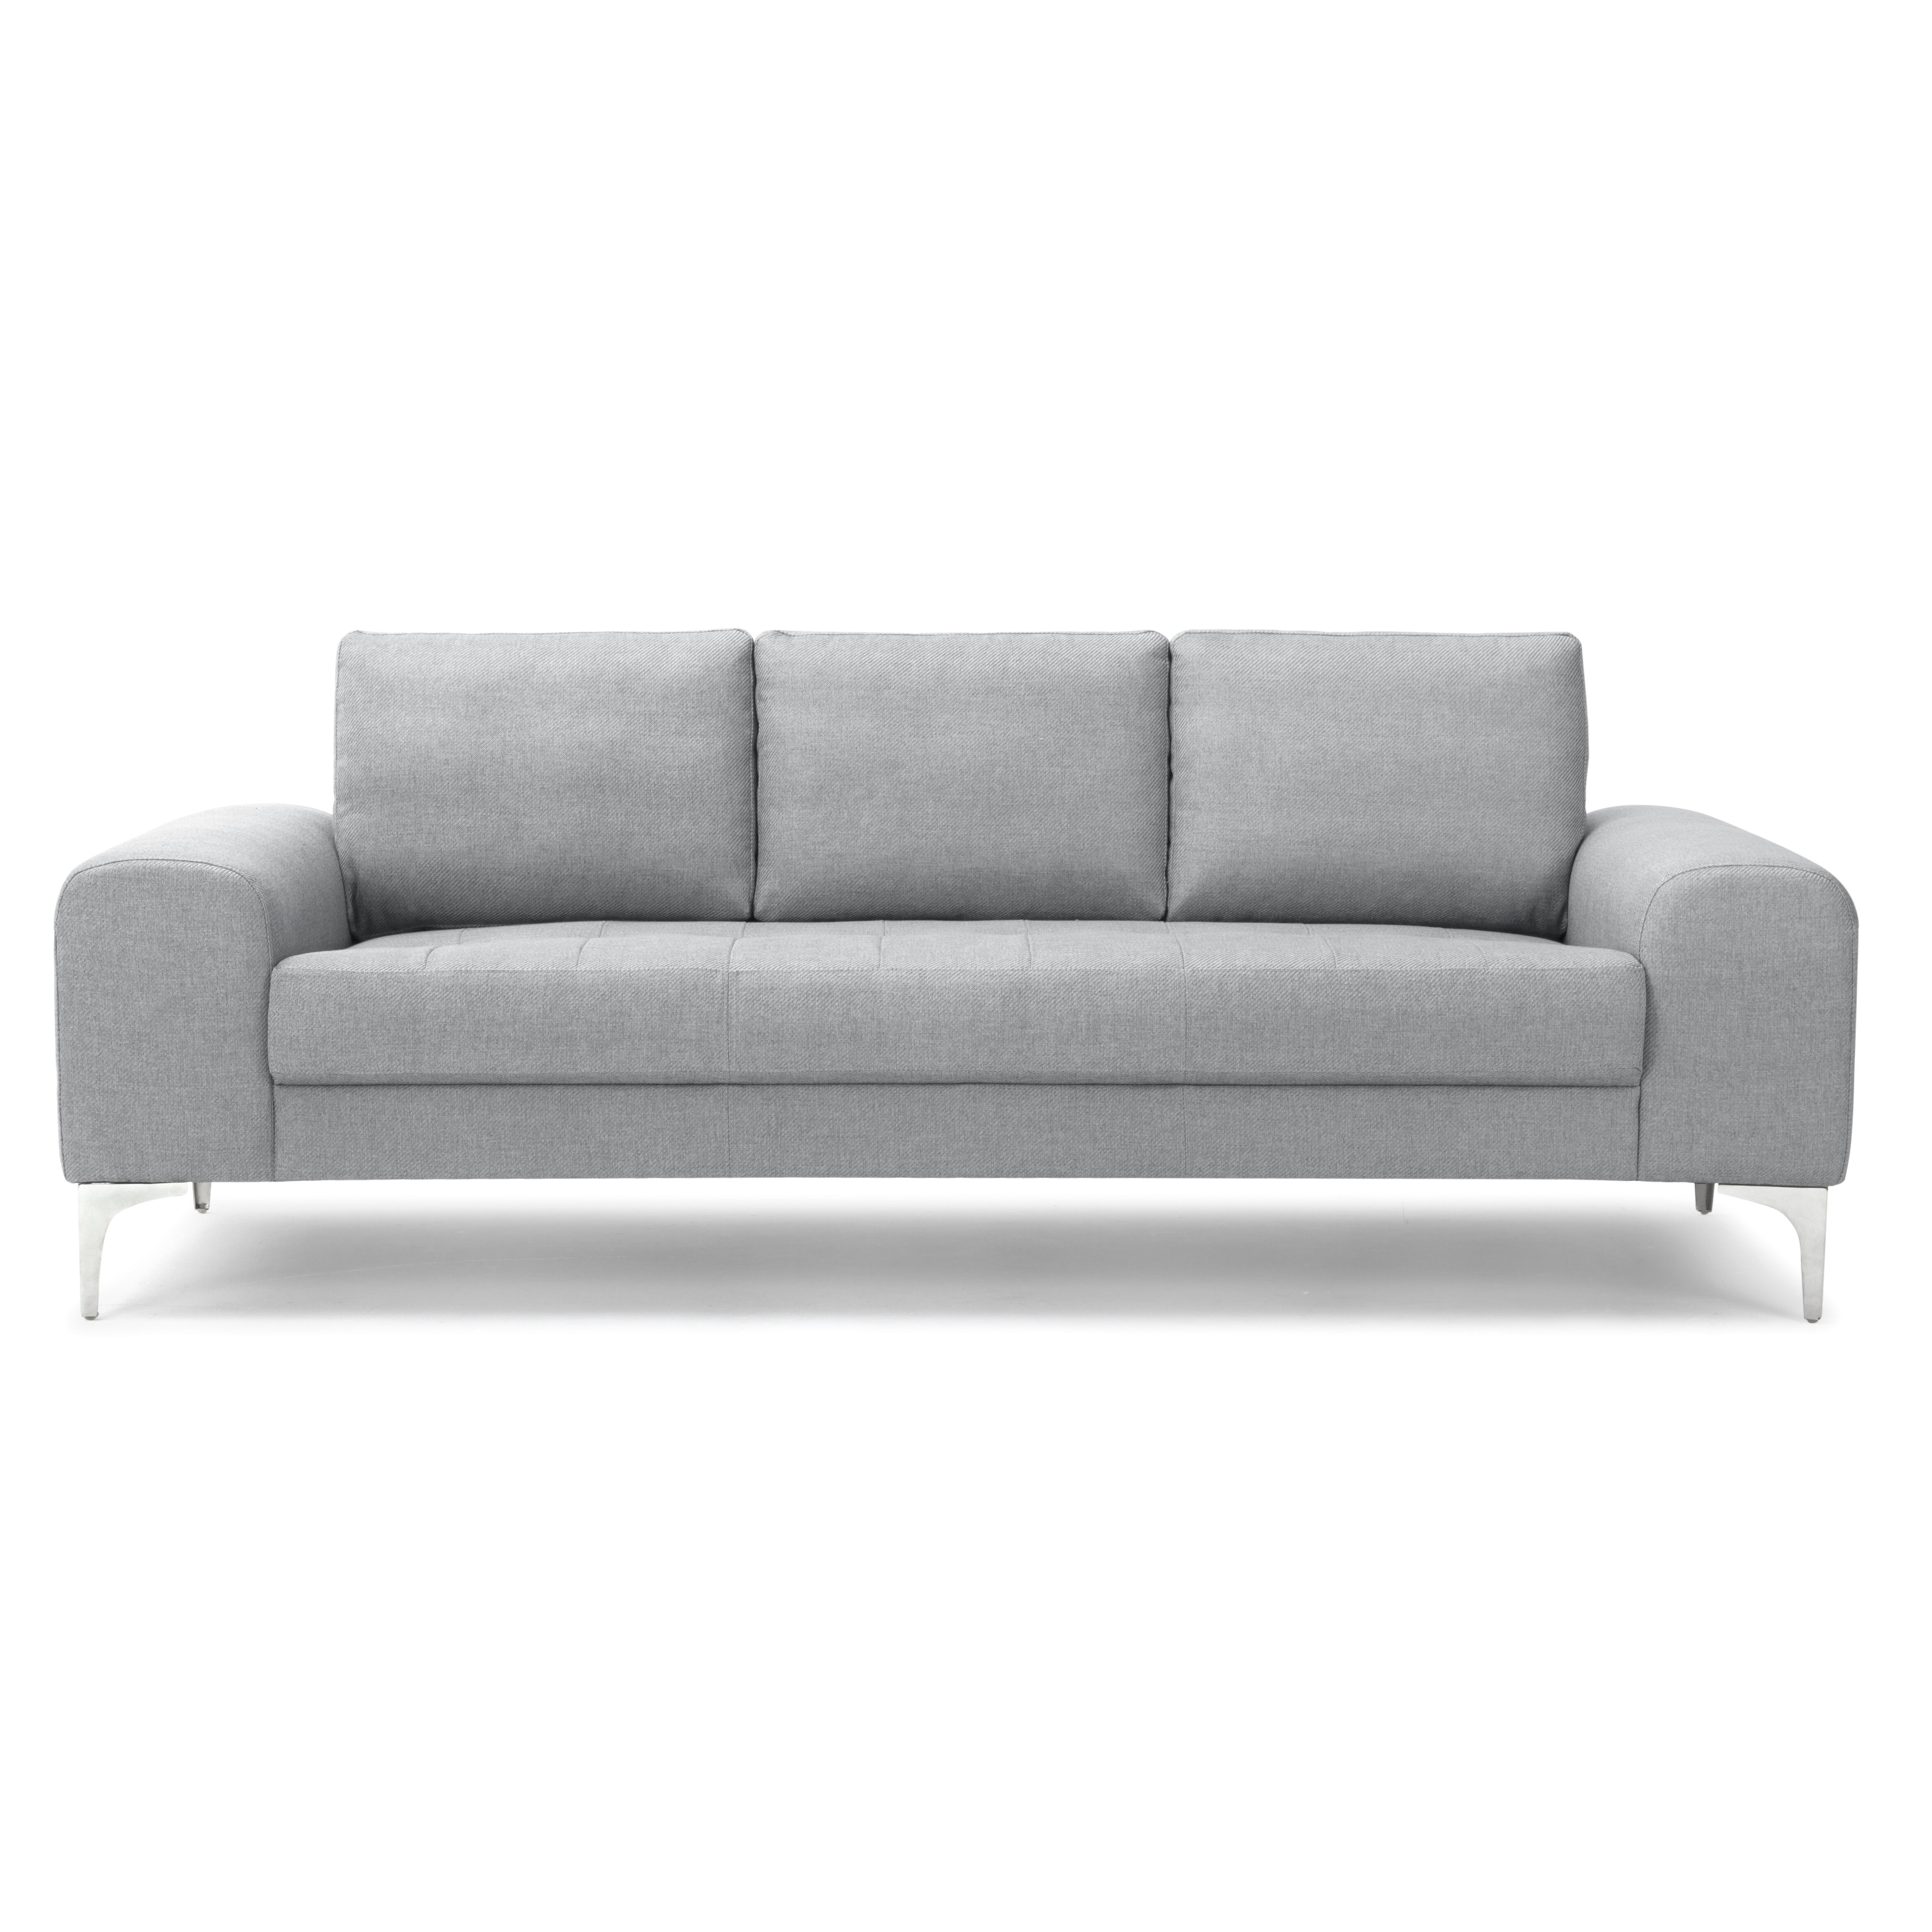 Byrd sofa review refil sofa for Sofa sectionnel liquidation